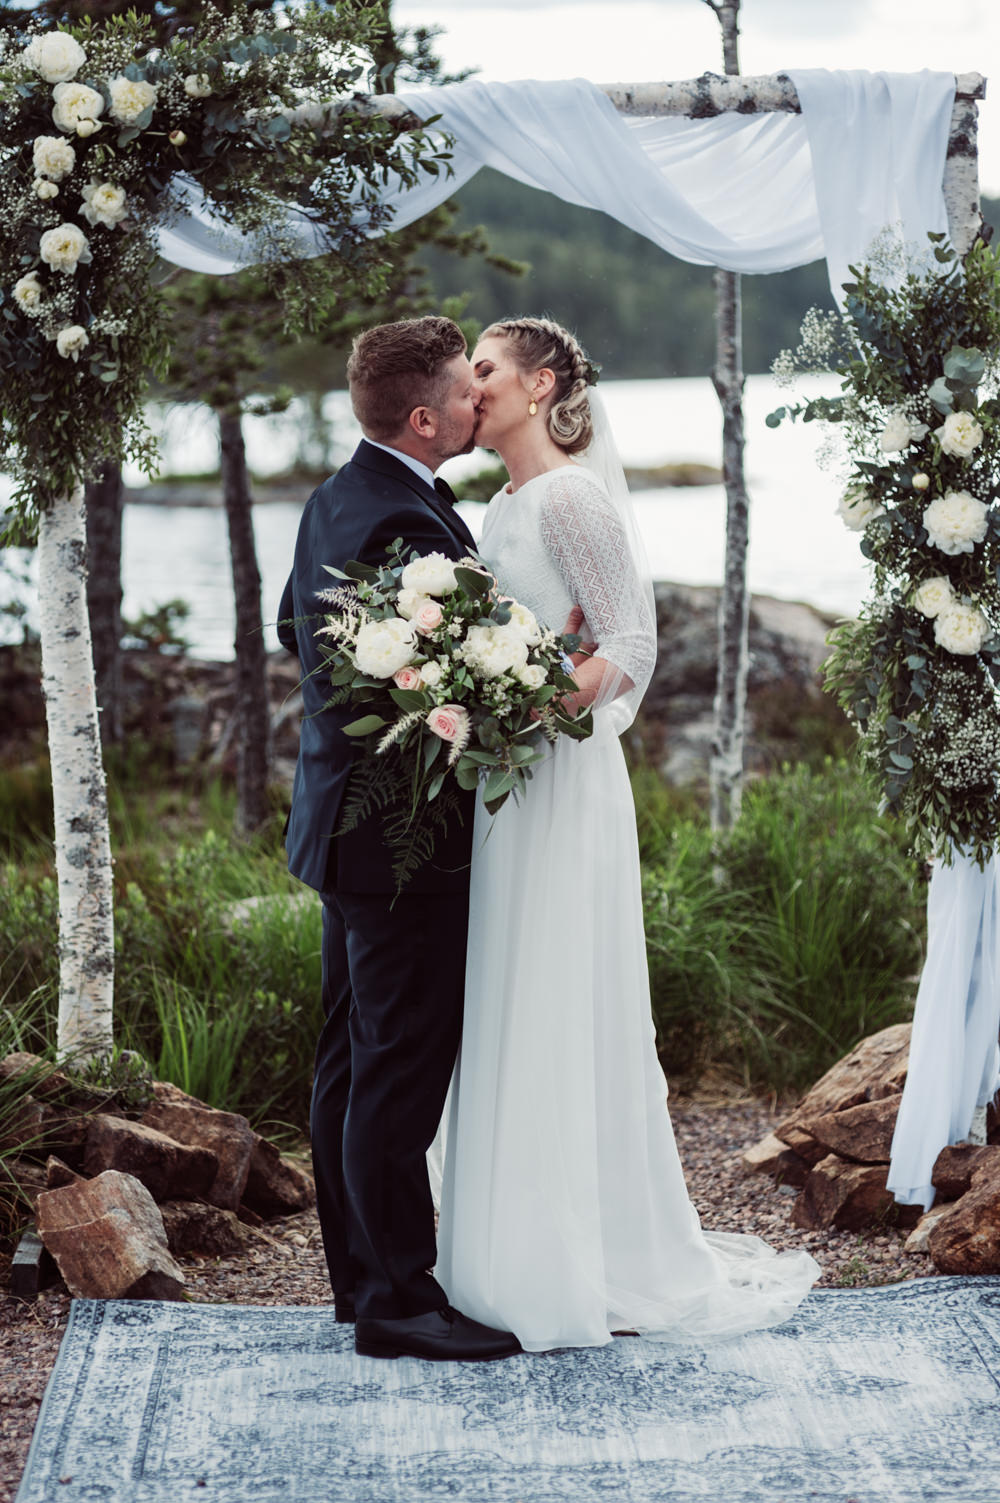 Outdoor Ceremony Backdrop Flower Arch Fabric Greenery Foliage Aisle Norway Wedding Maximilian Photography